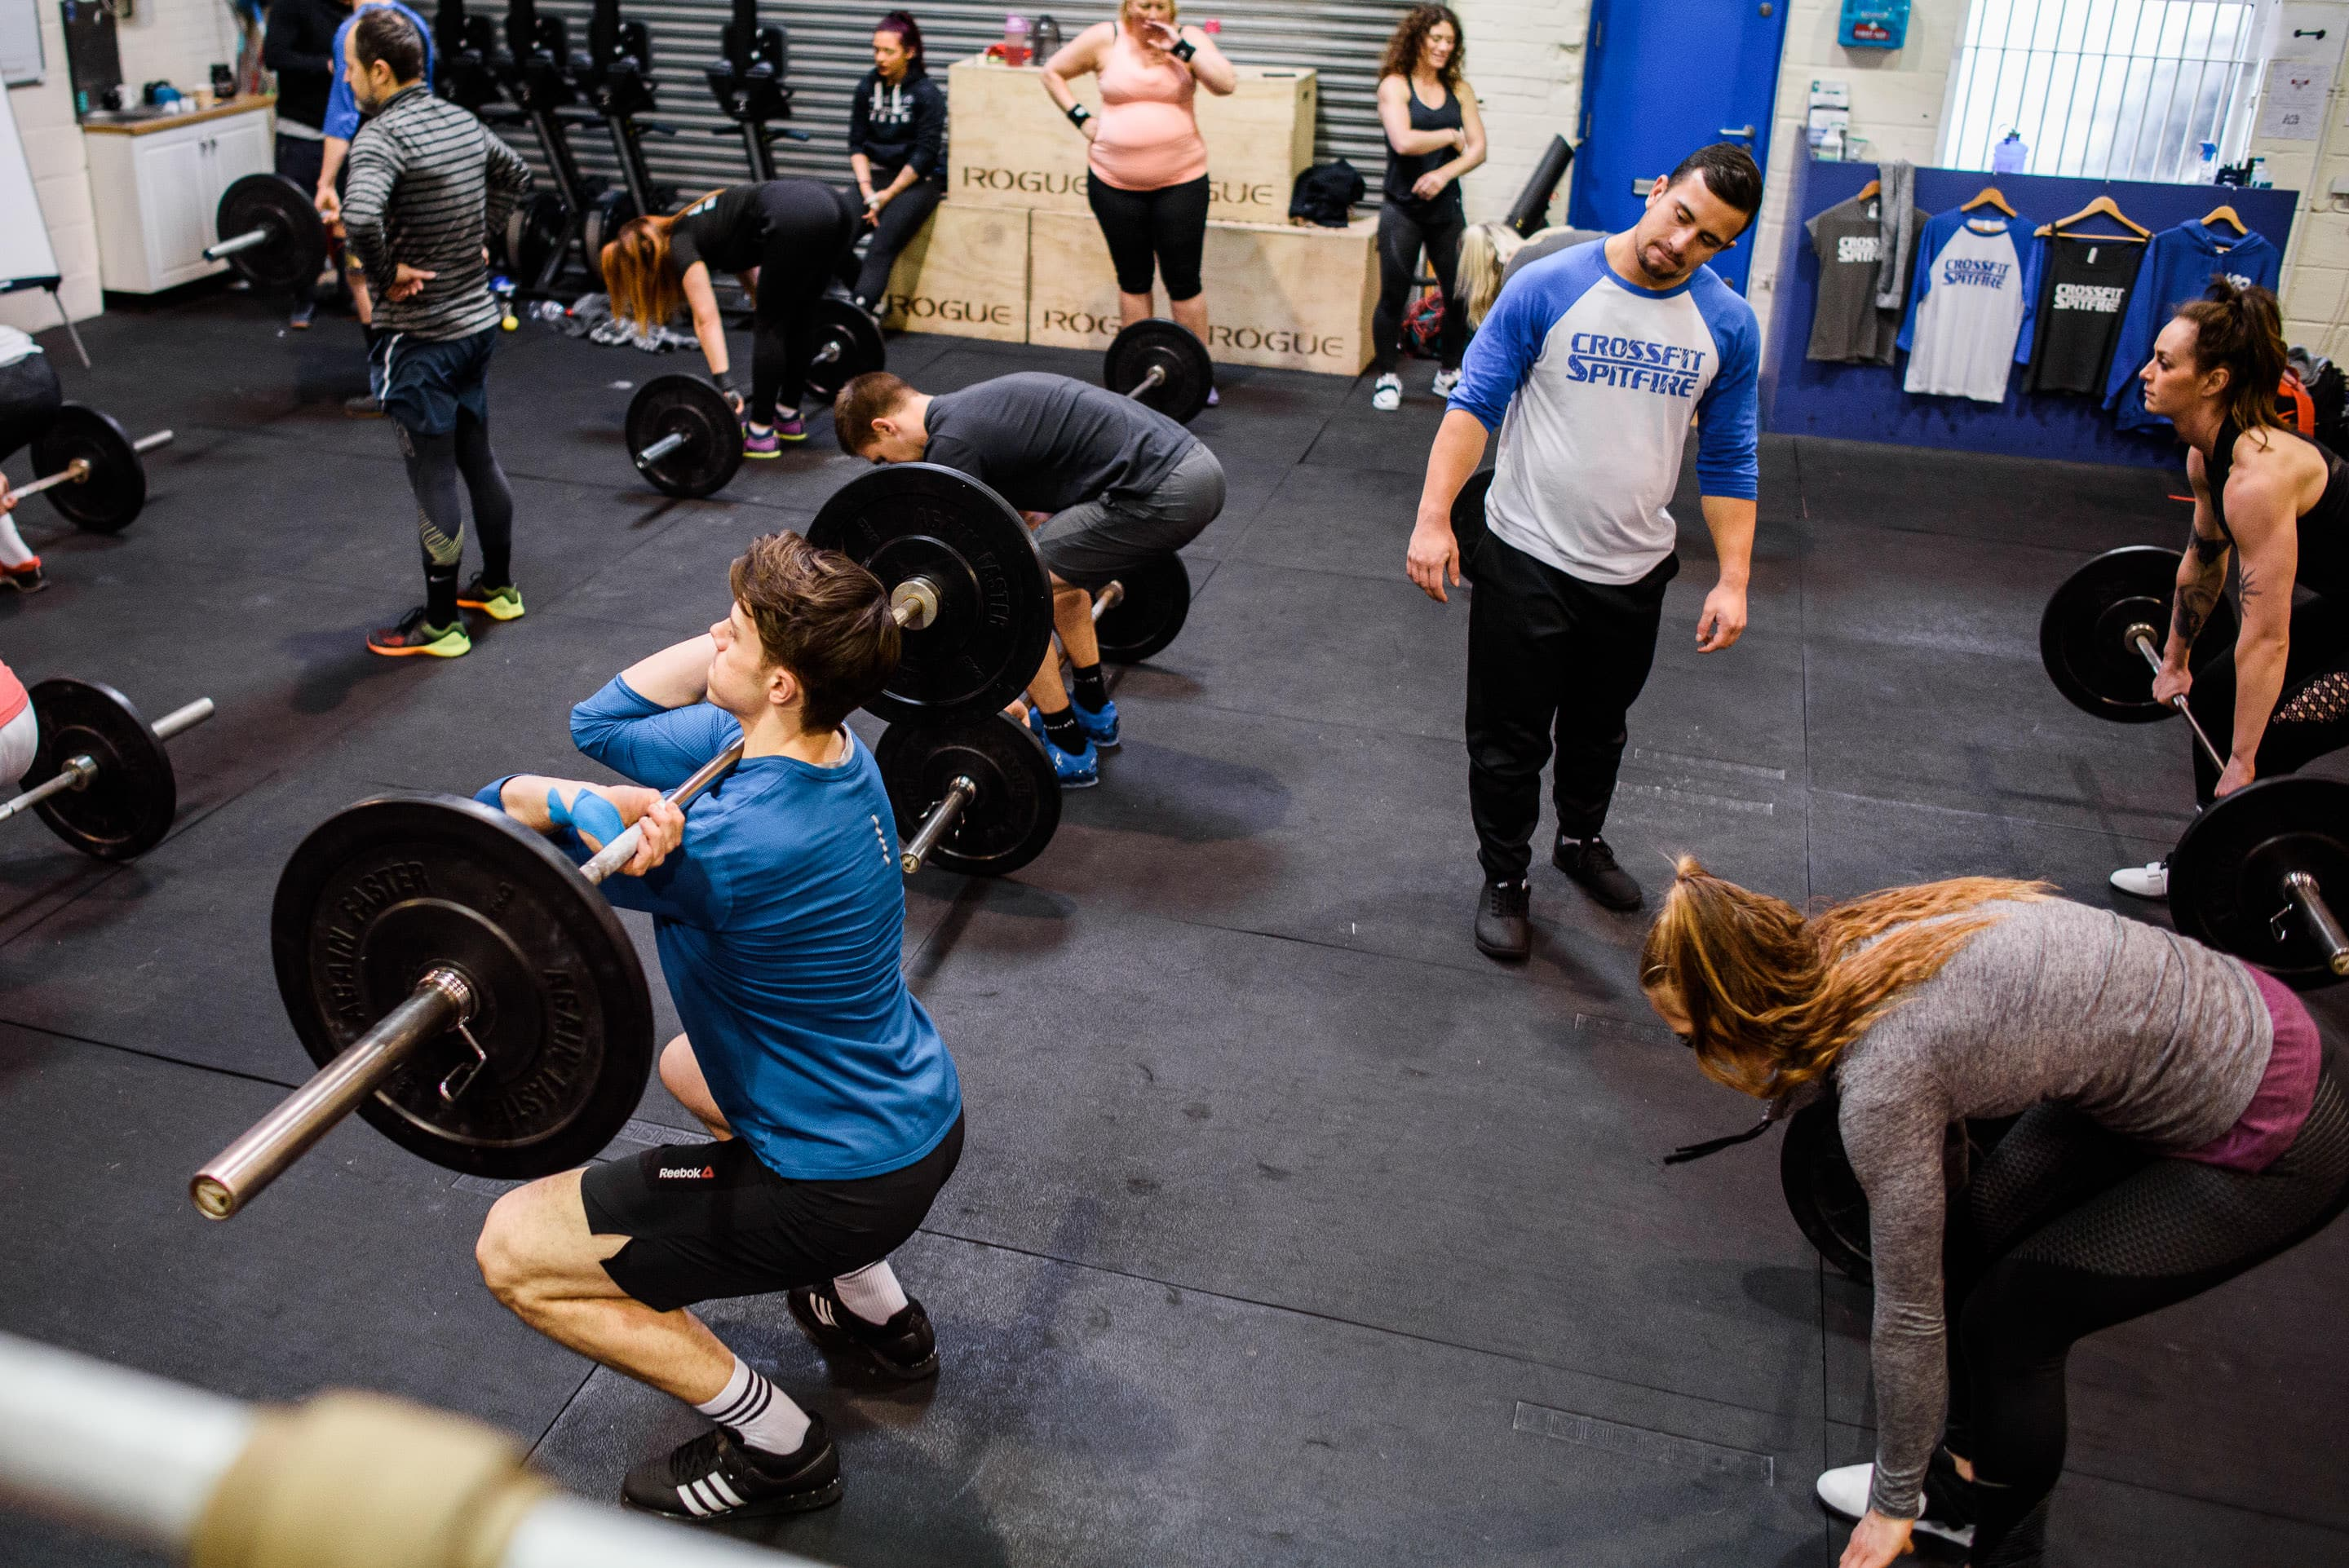 CrossFit Spitfire - Weightlifting Seminar 16